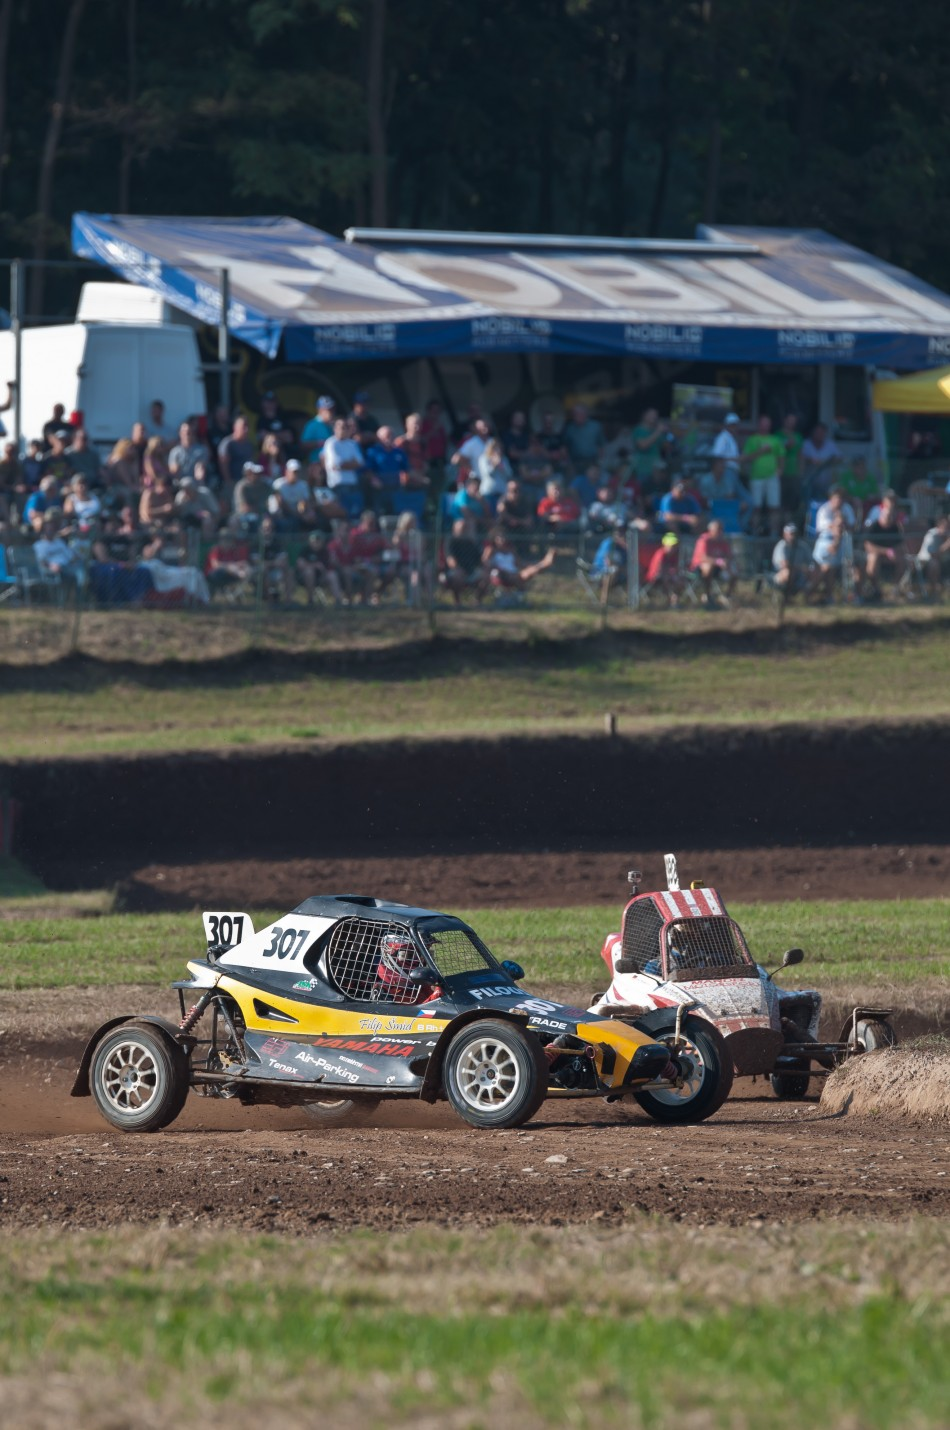 FIA European Champs for Autocross Drivers - Maggiora (ITA)